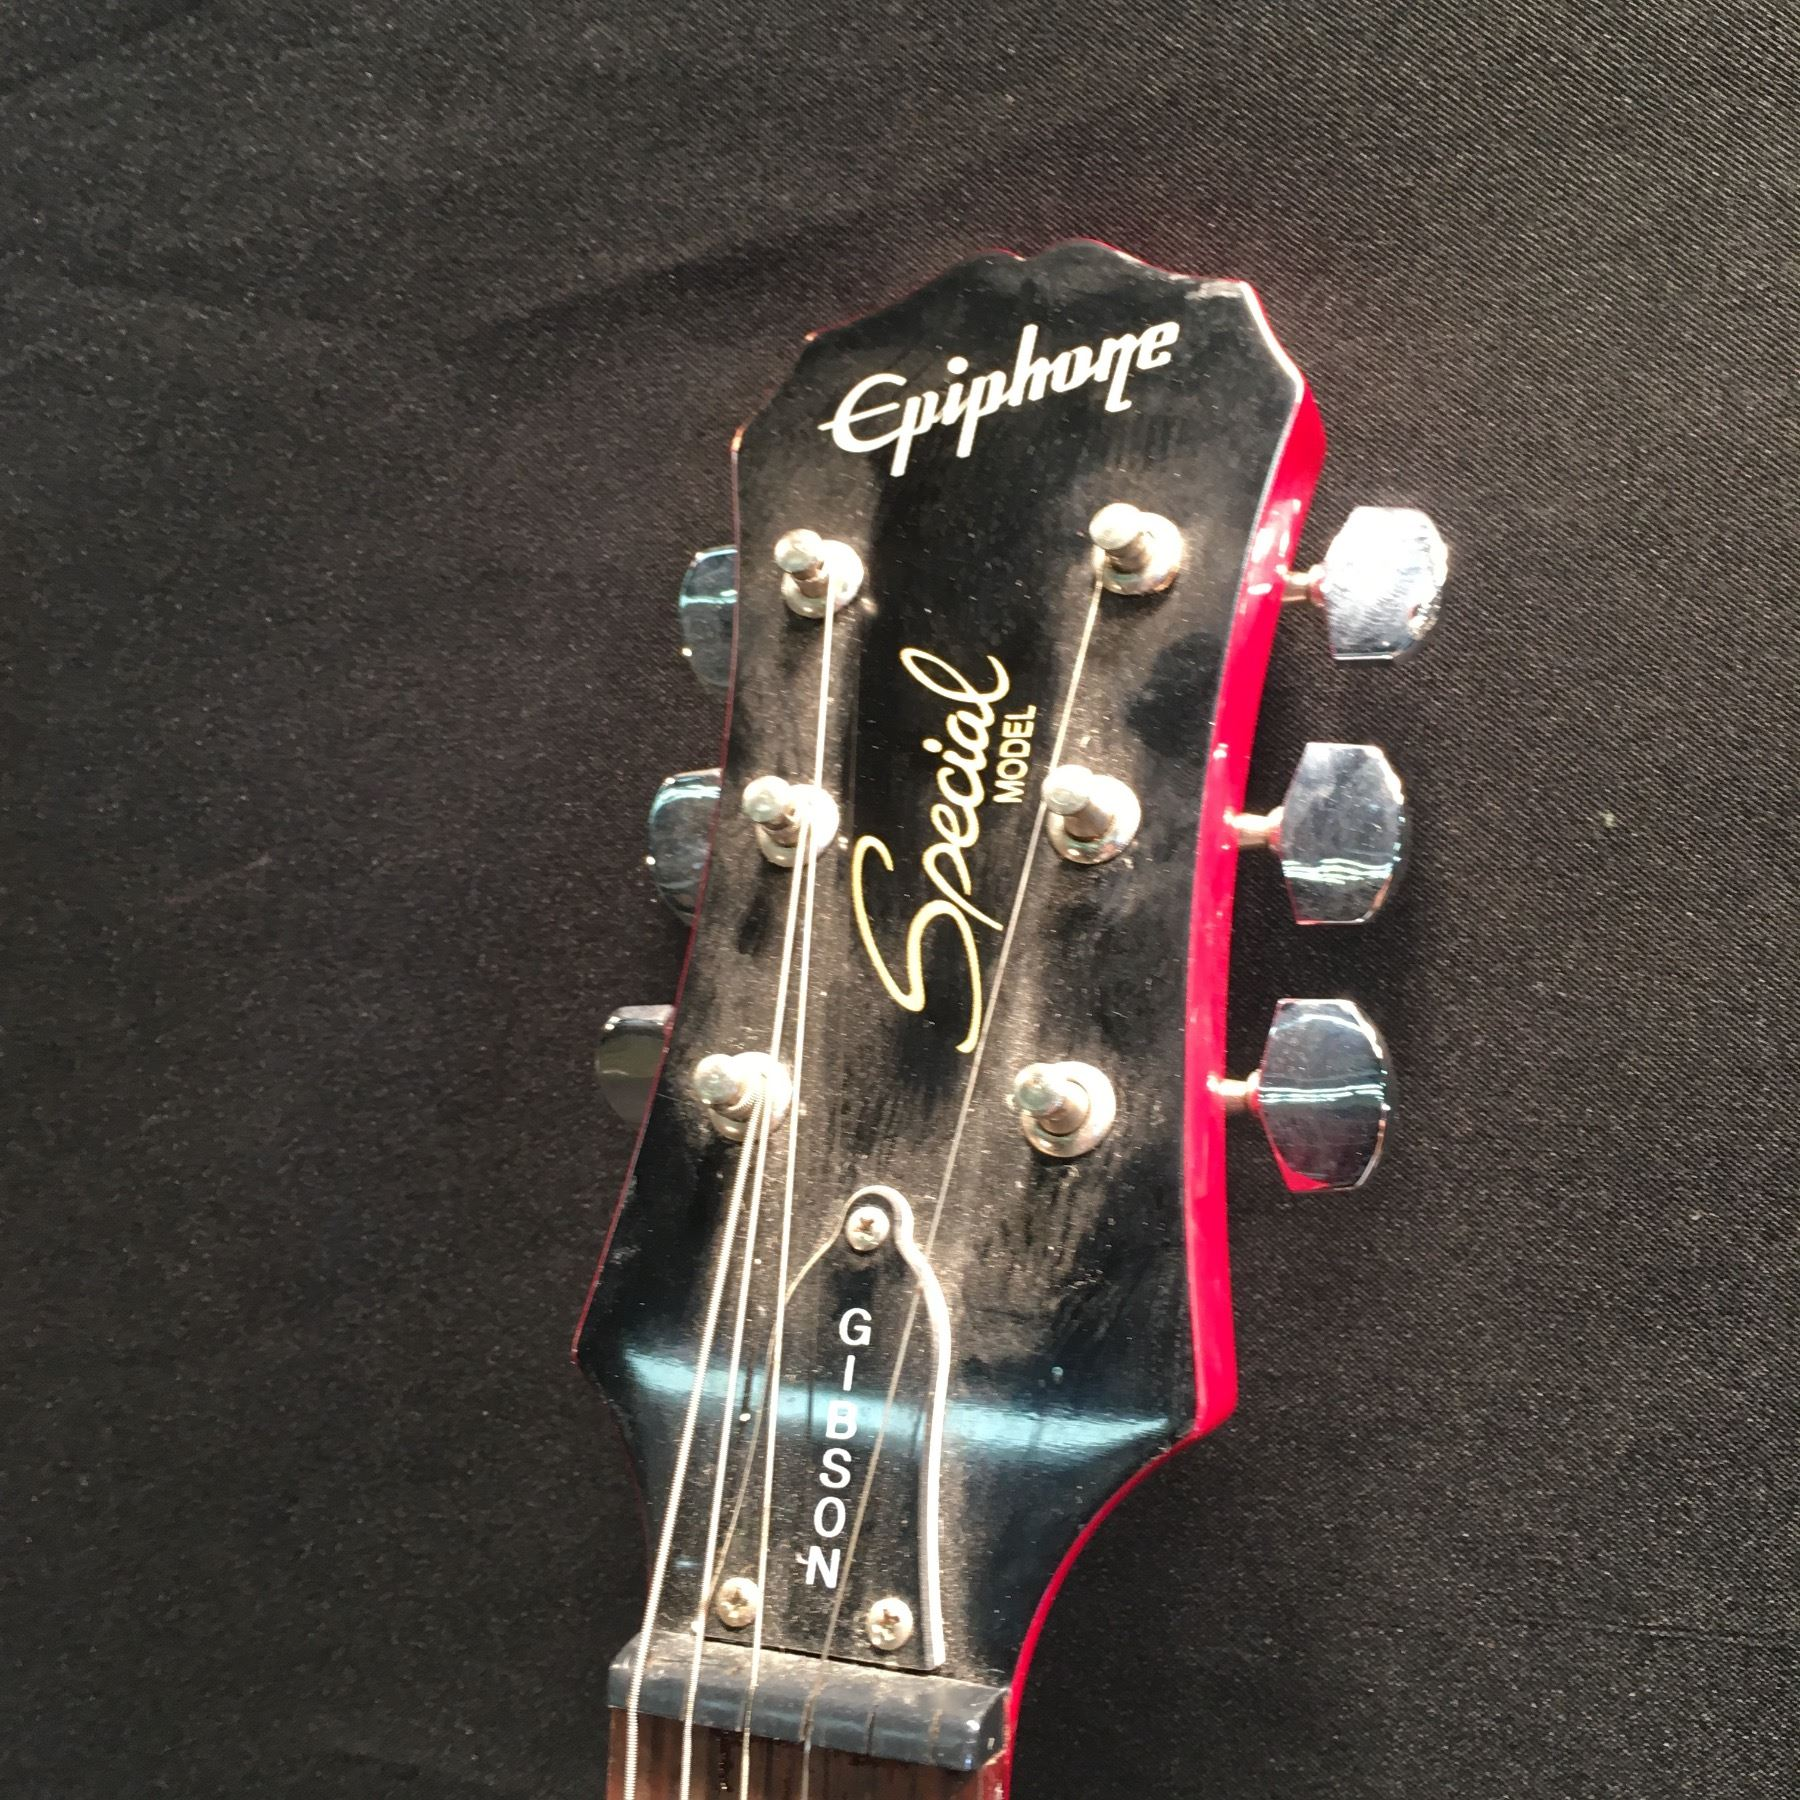 epiphone special model les paul style guitar with two humbucker pickups volume and tone. Black Bedroom Furniture Sets. Home Design Ideas